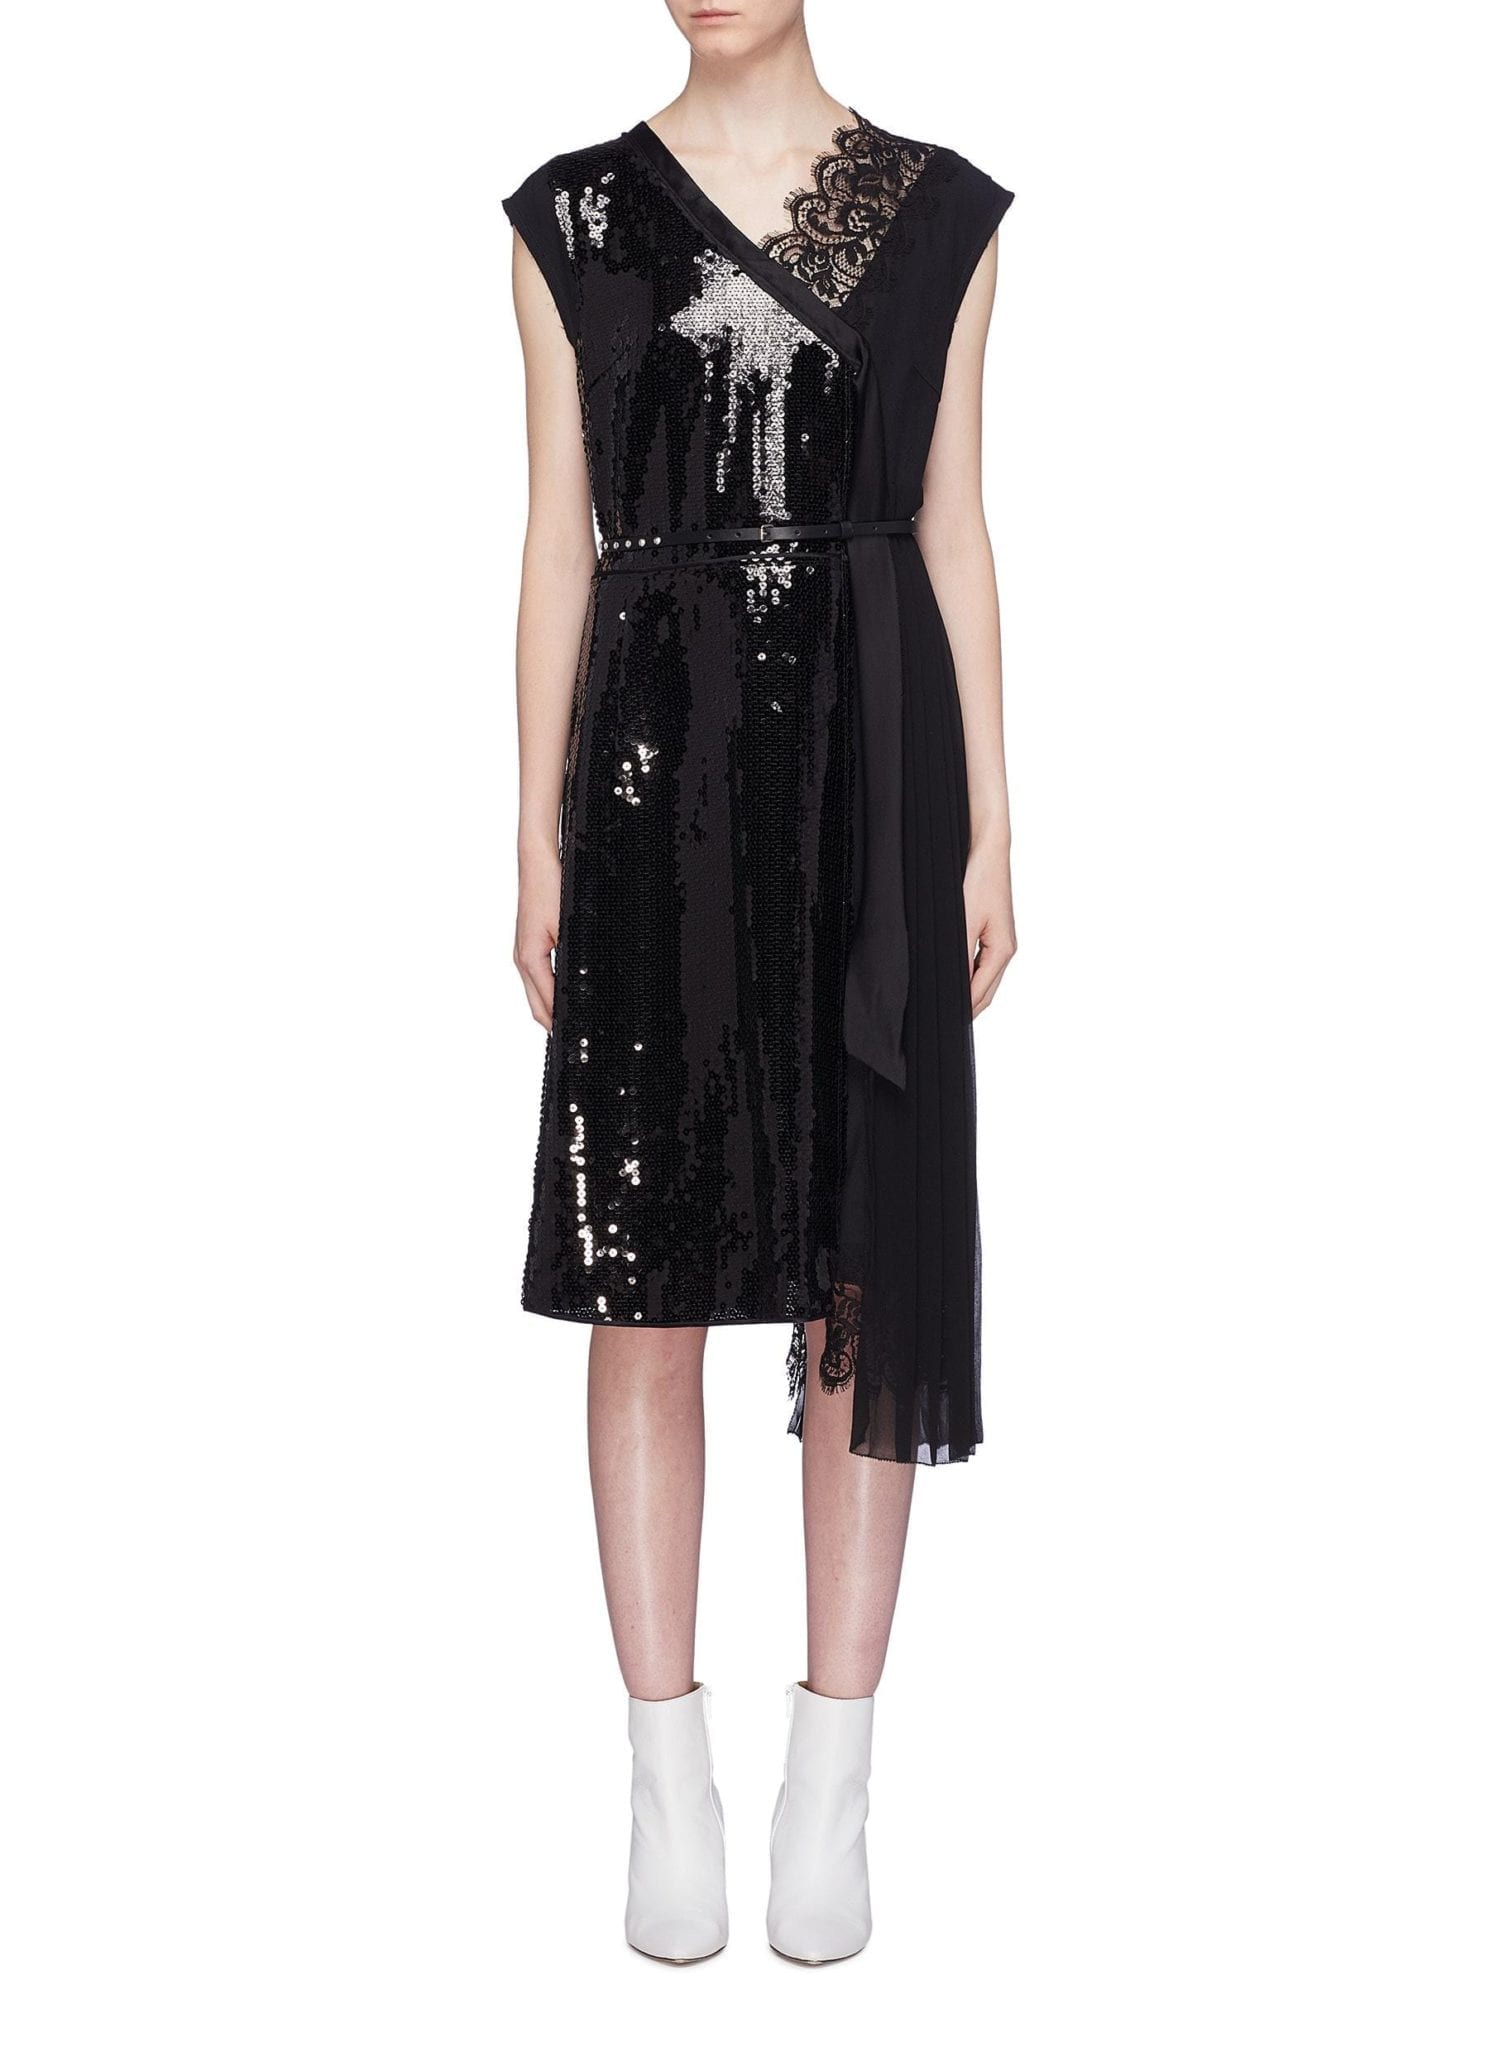 MARC JACOBS Belted Pleated Chiffon Panel Sequin Wrap Black Dress